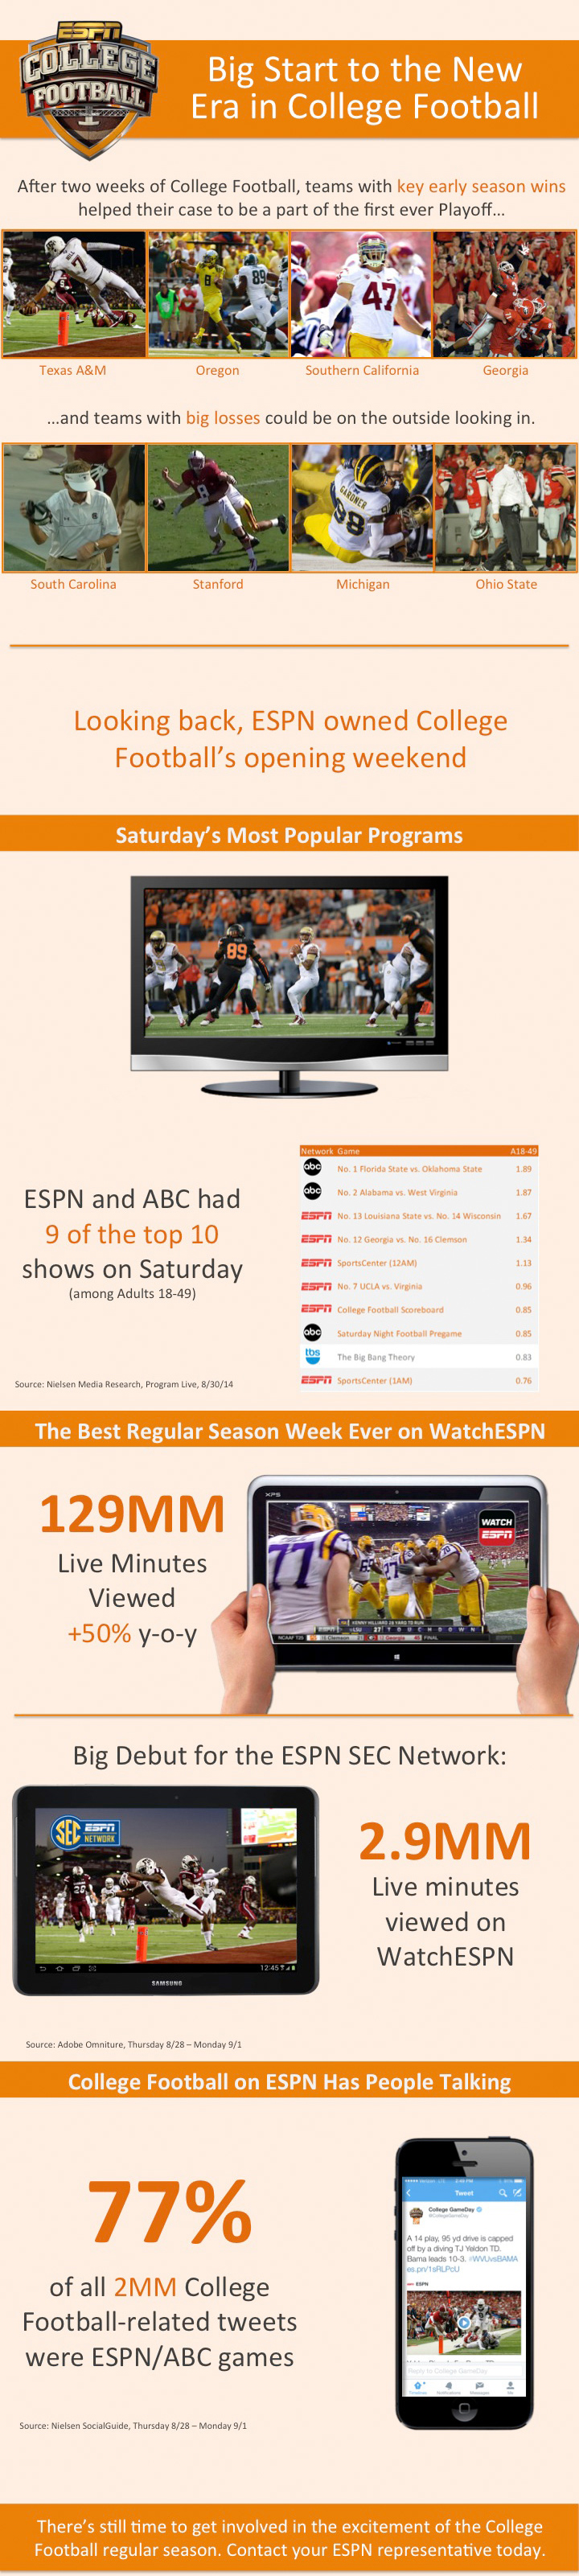 ESPNCMS Stream - EPSN College Football - Big Start to the New Era in College Football